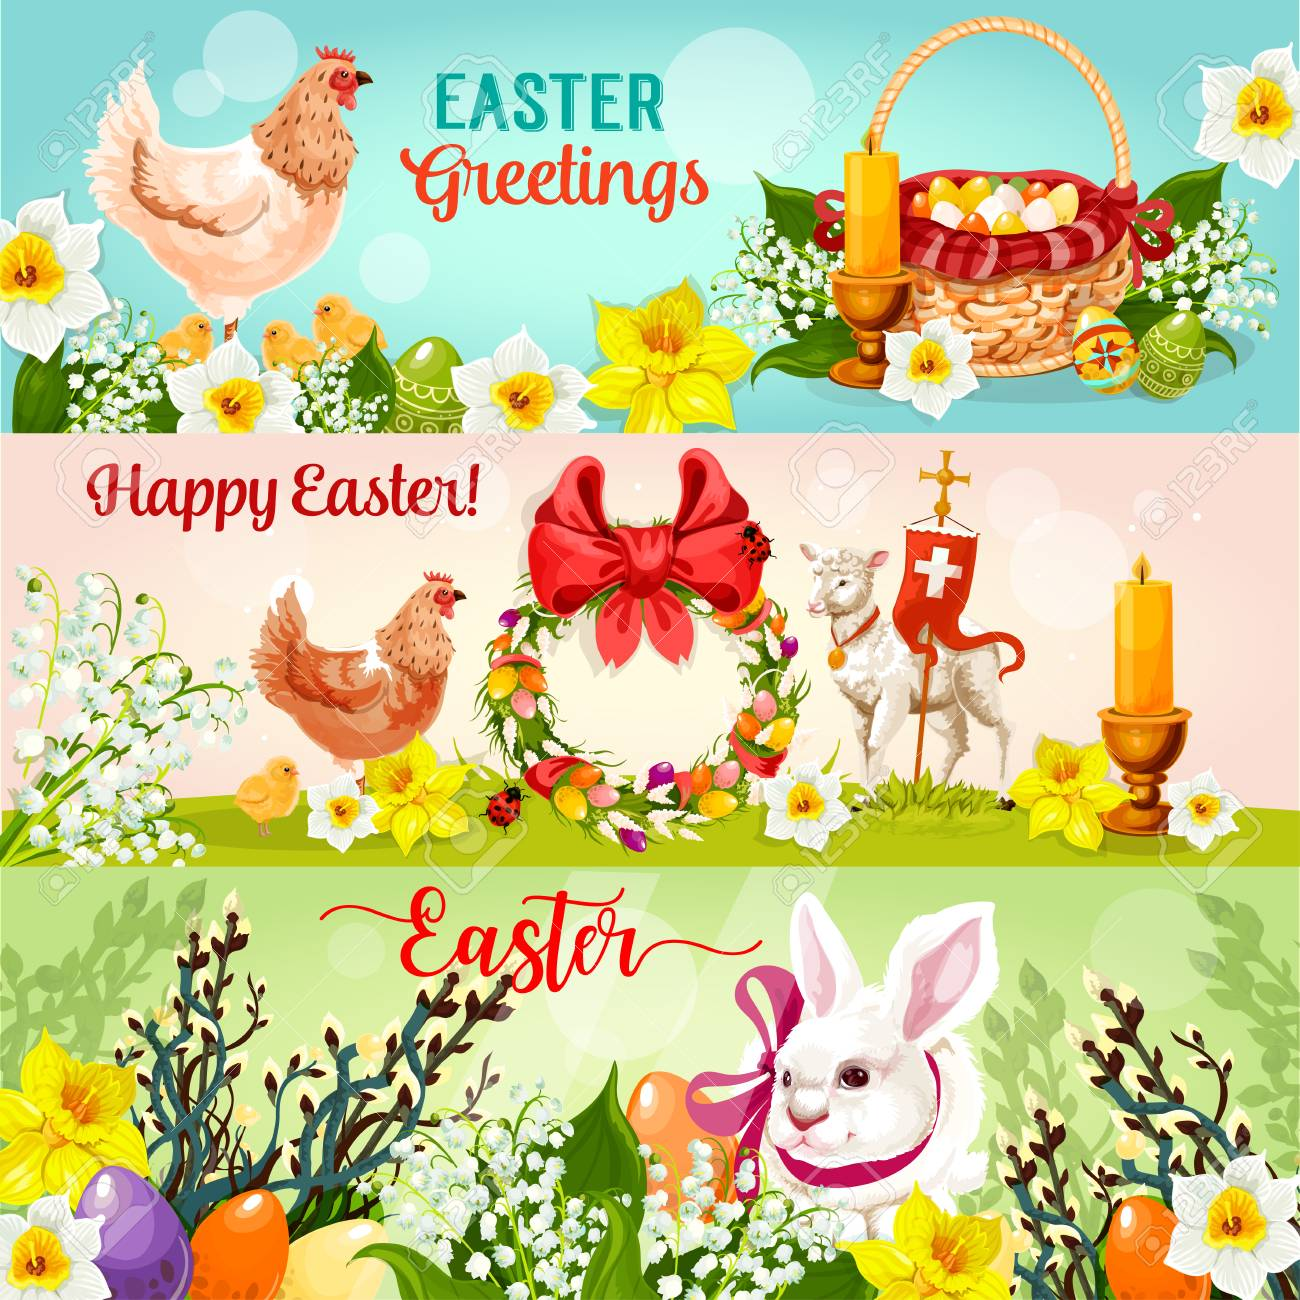 Happy Easter Greetings Banner Set Easter Rabbit Bunny With Egg